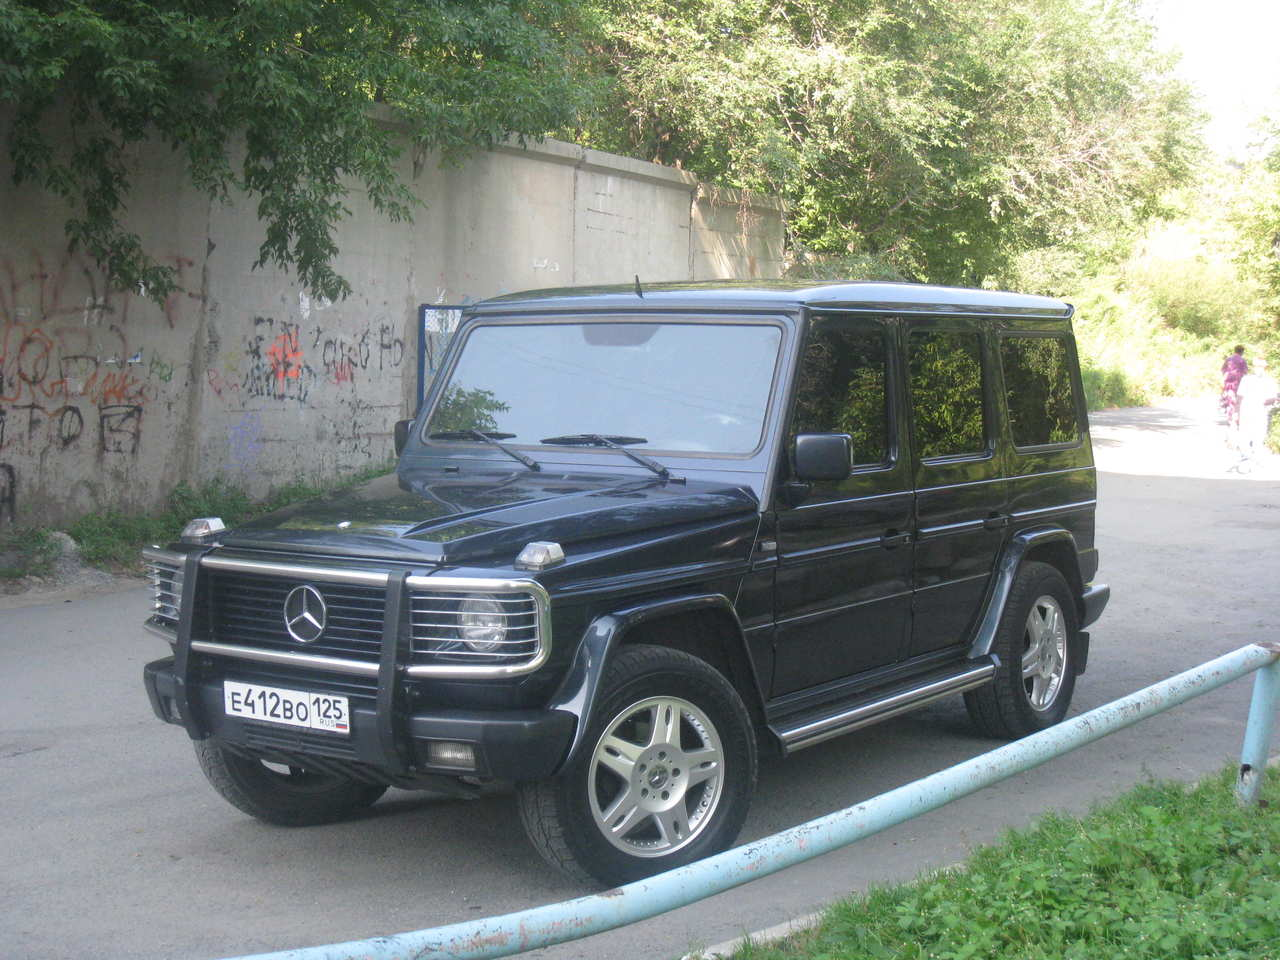 Used 2000 mercedes benz g class photos 3000cc diesel for Mercedes benz g class used 2003